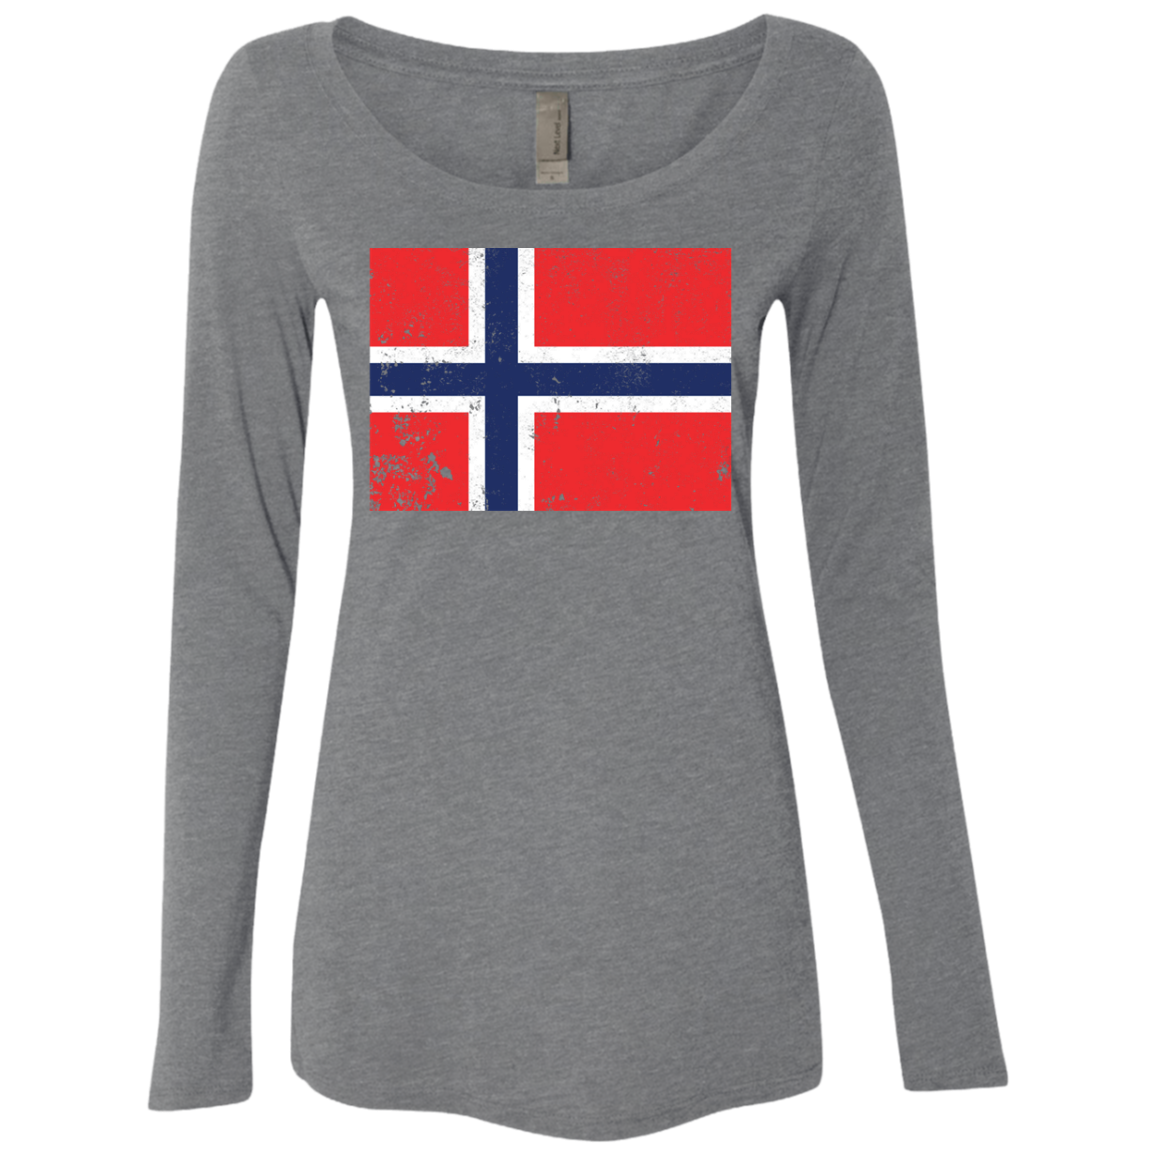 Norway Women's Long Sleeve Tee